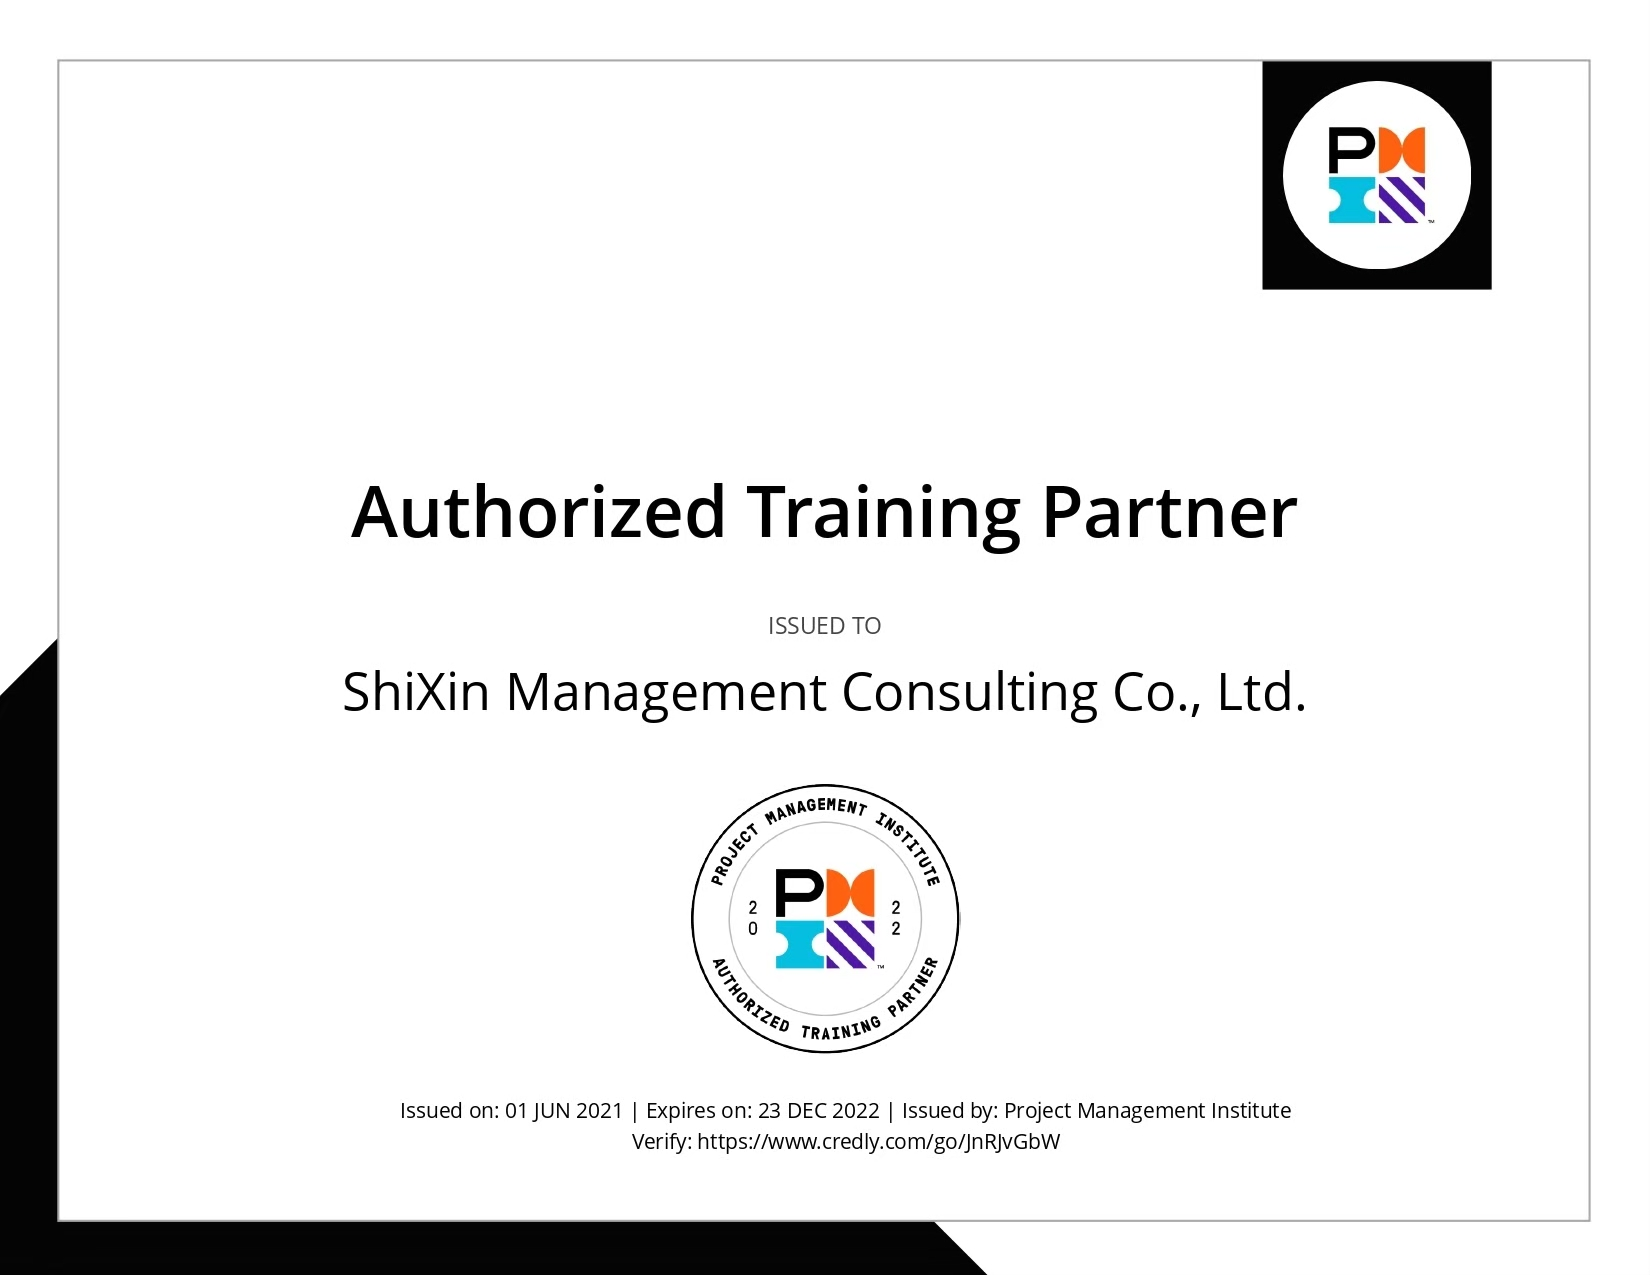 SHIXIN MANAGEMANT CONSULTING CO., LTD